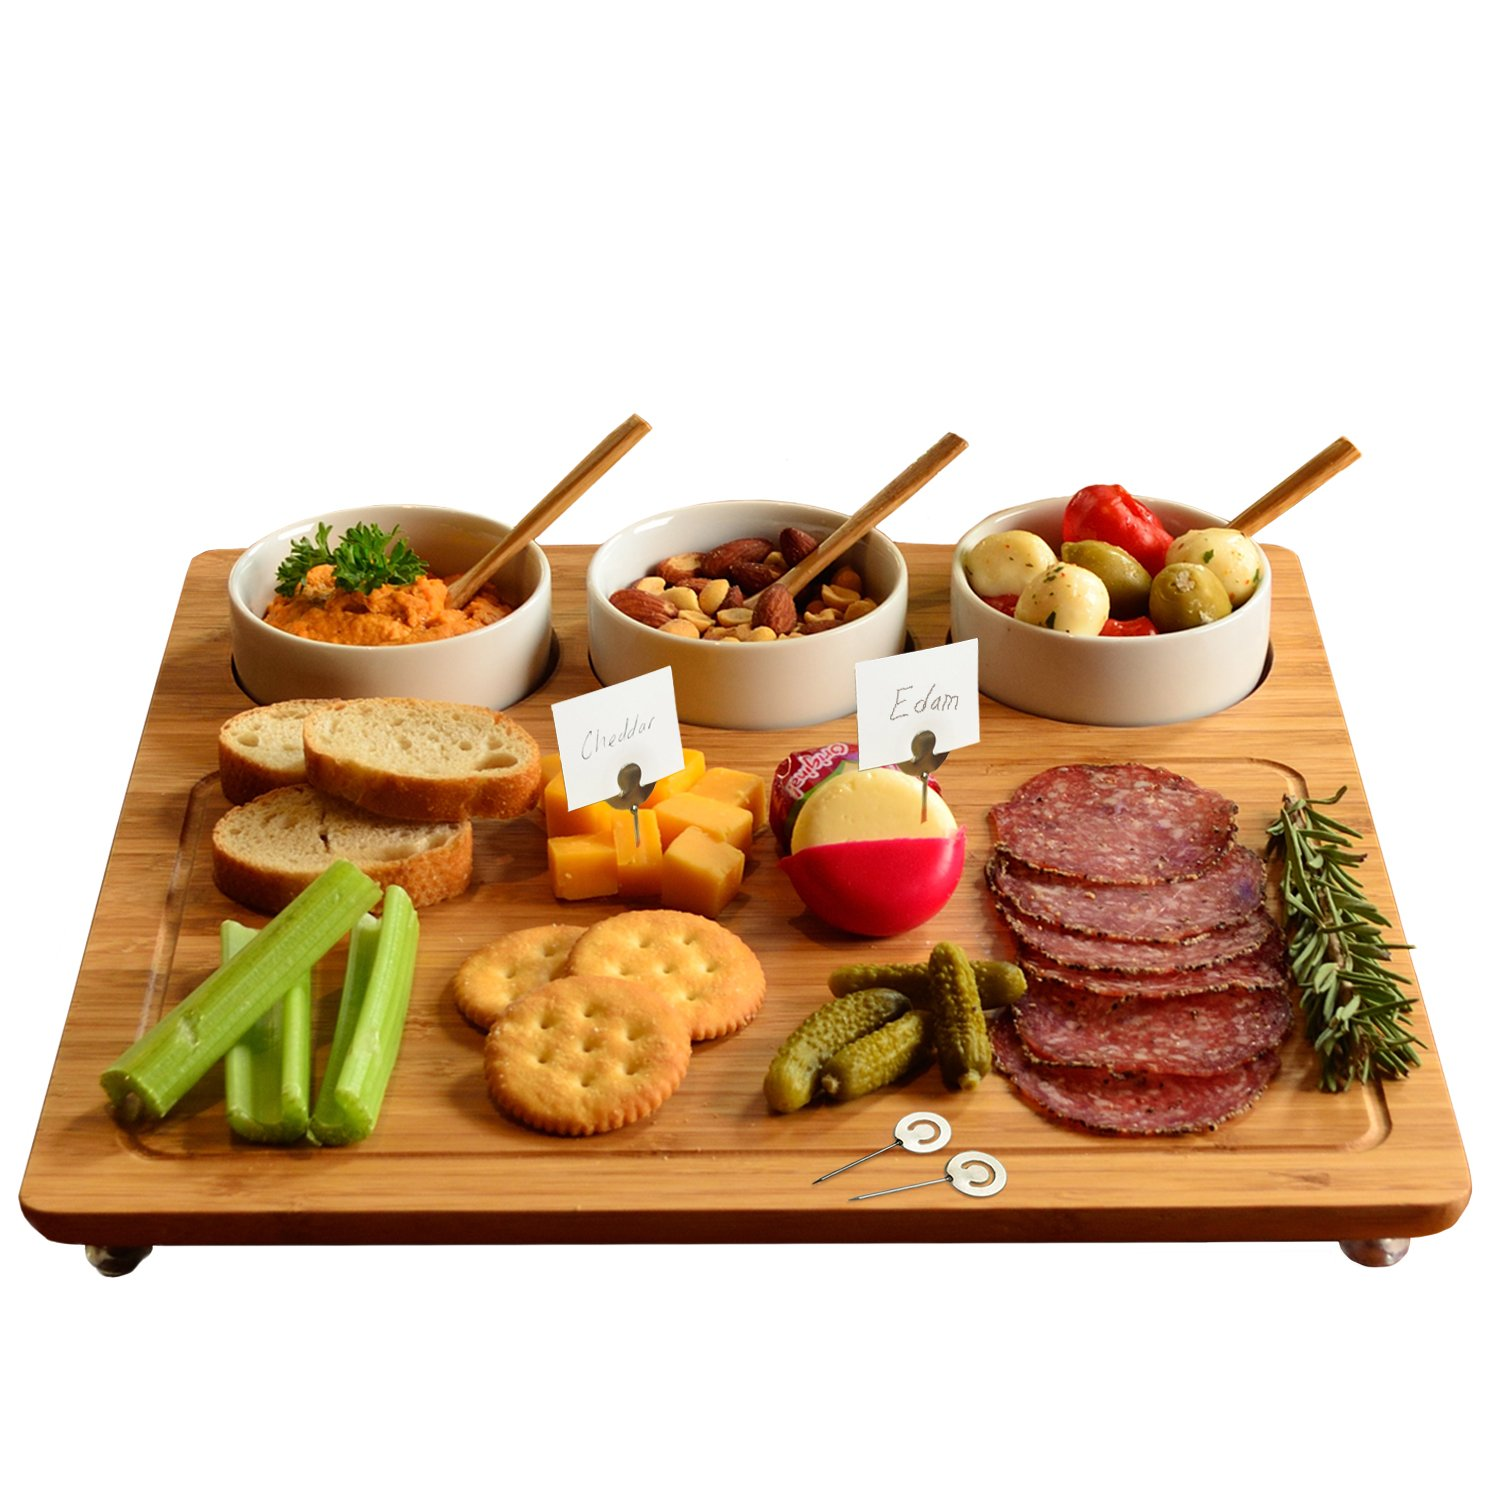 Picnic at Ascot Original Bamboo Cheese Board/Charcuterie Platter - Includes 3 Ceramic Bowls with Bamboo Spoons - Cheese Markers - Designed and Quality Checked in the USA by Picnic at Ascot